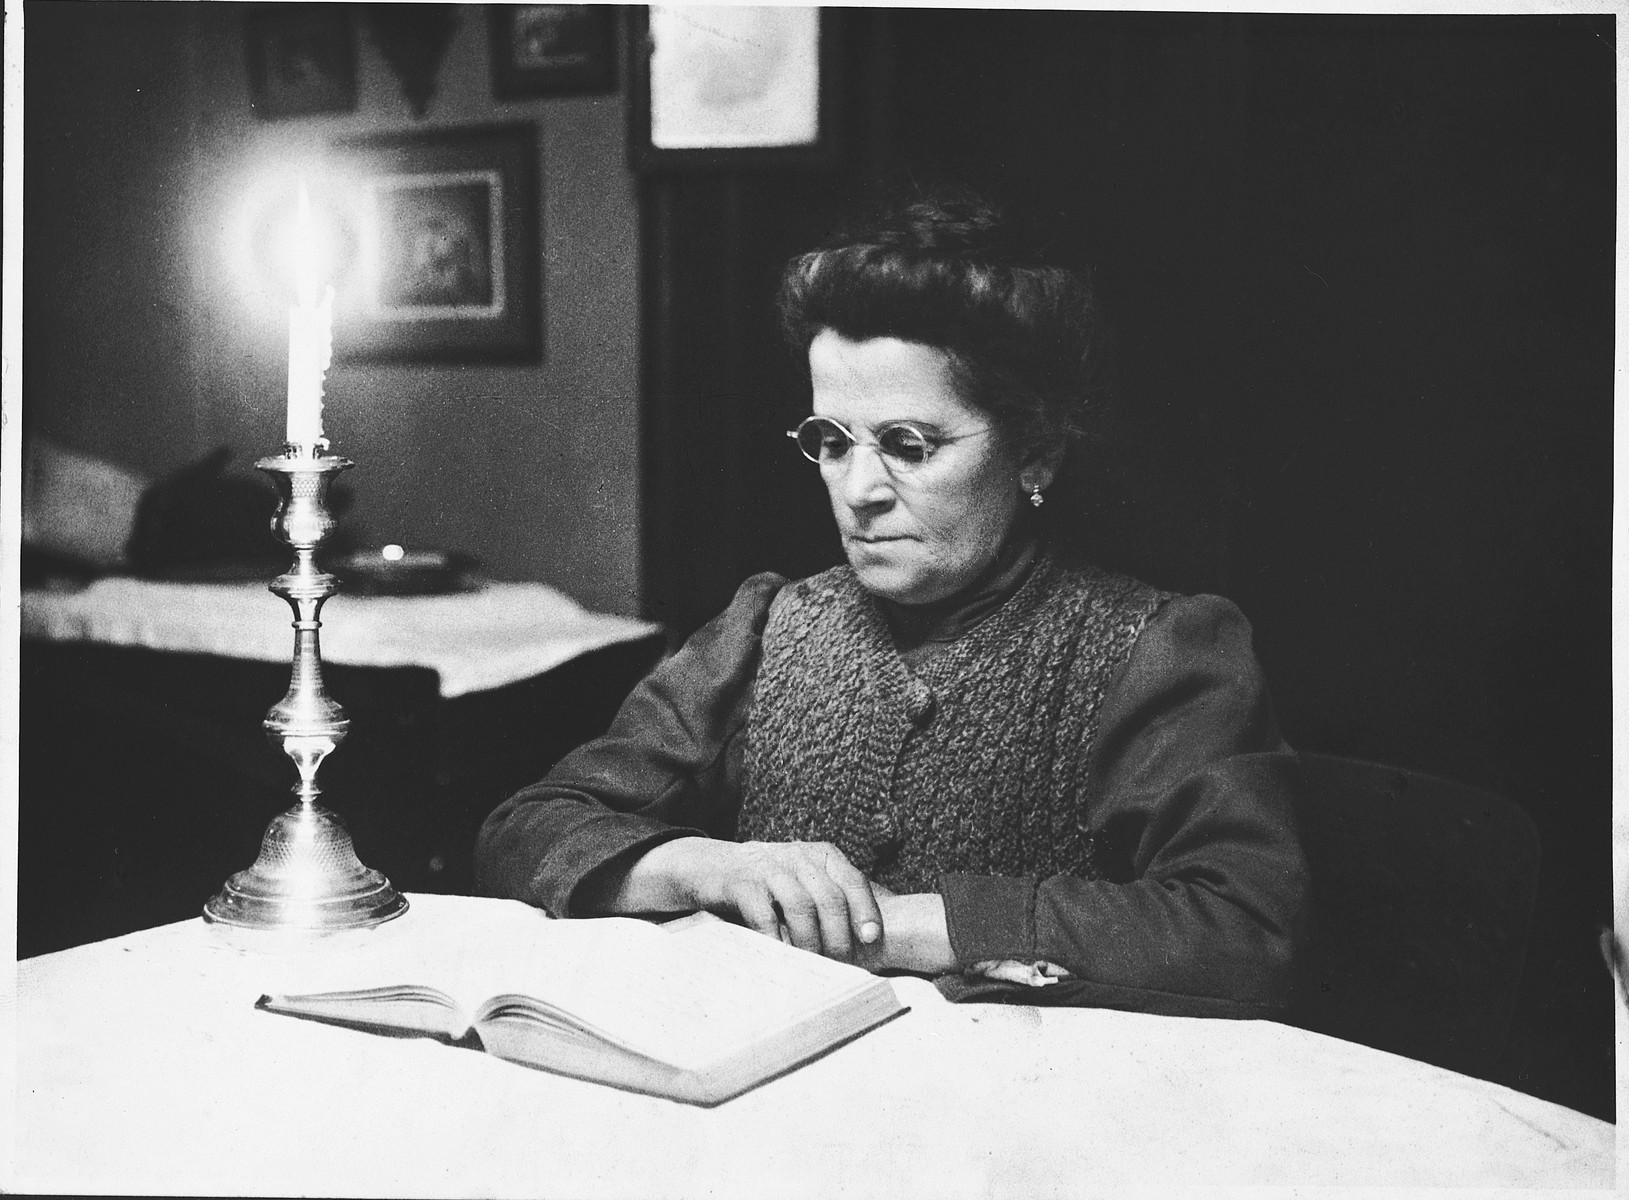 Close-up portrait of Katie Taubner (grandmother of the donor) reading a book by candlelight.